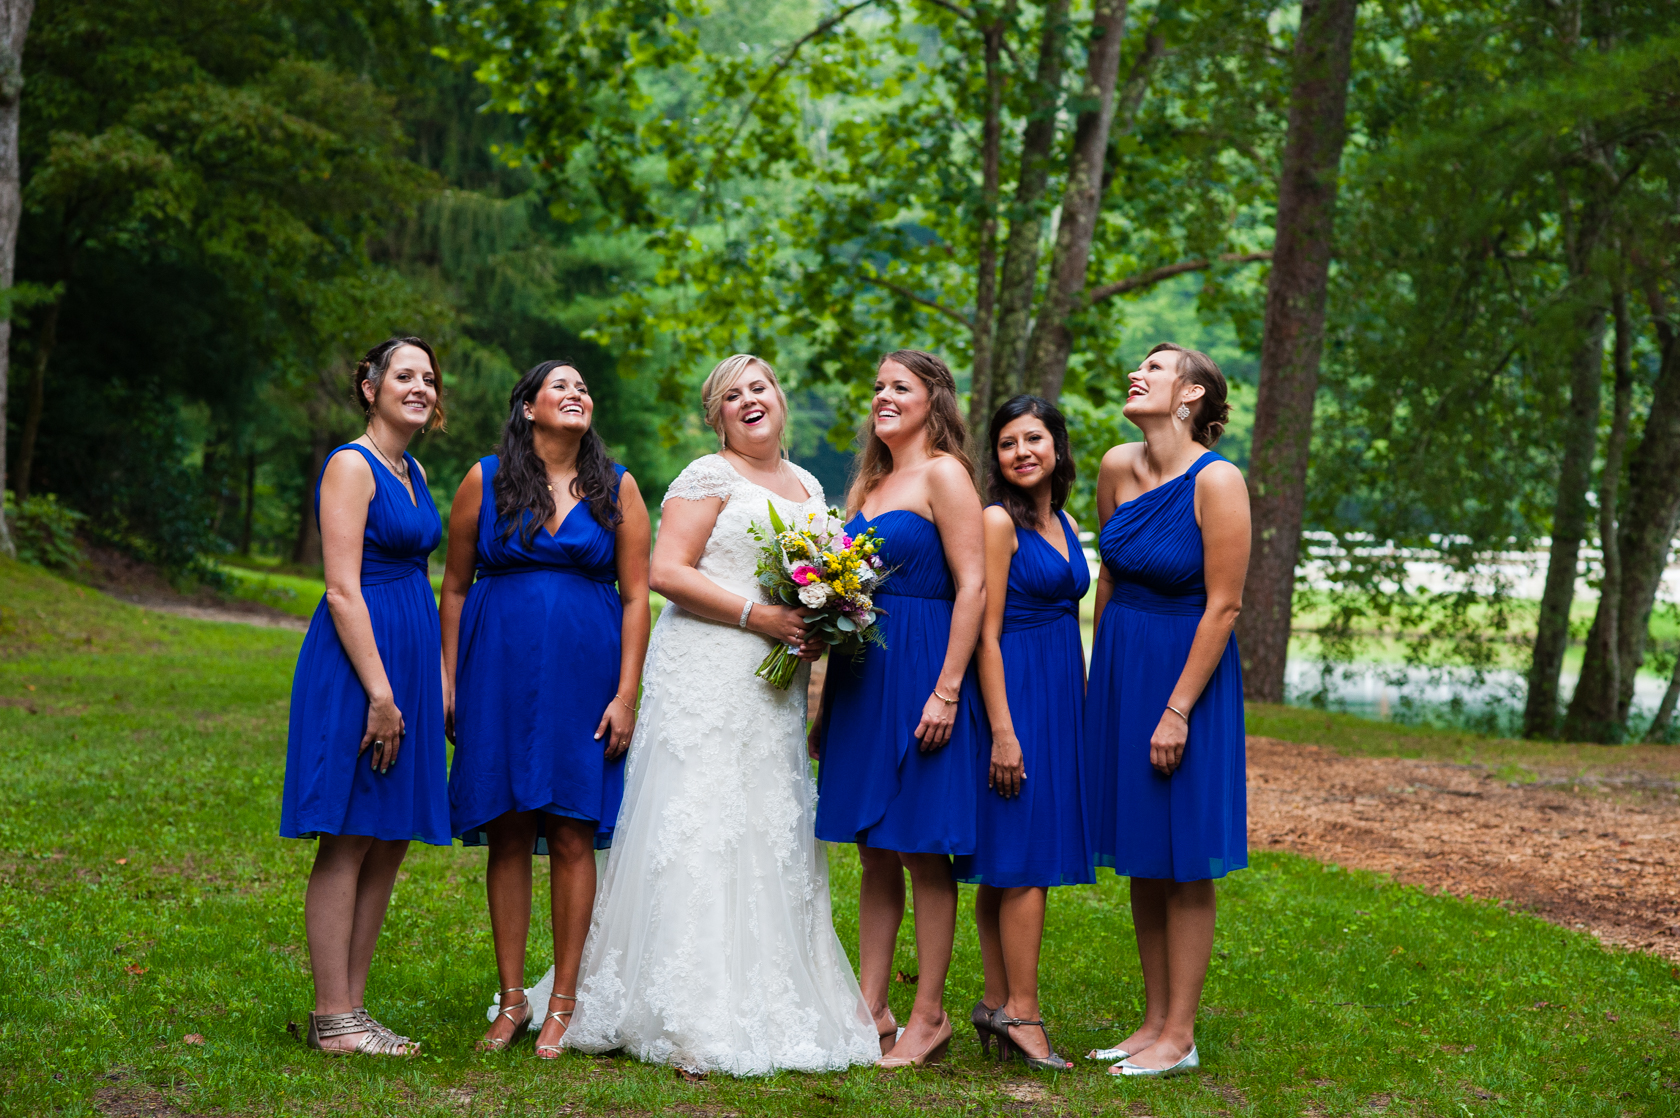 the bride and her beautiful ladies giggling together